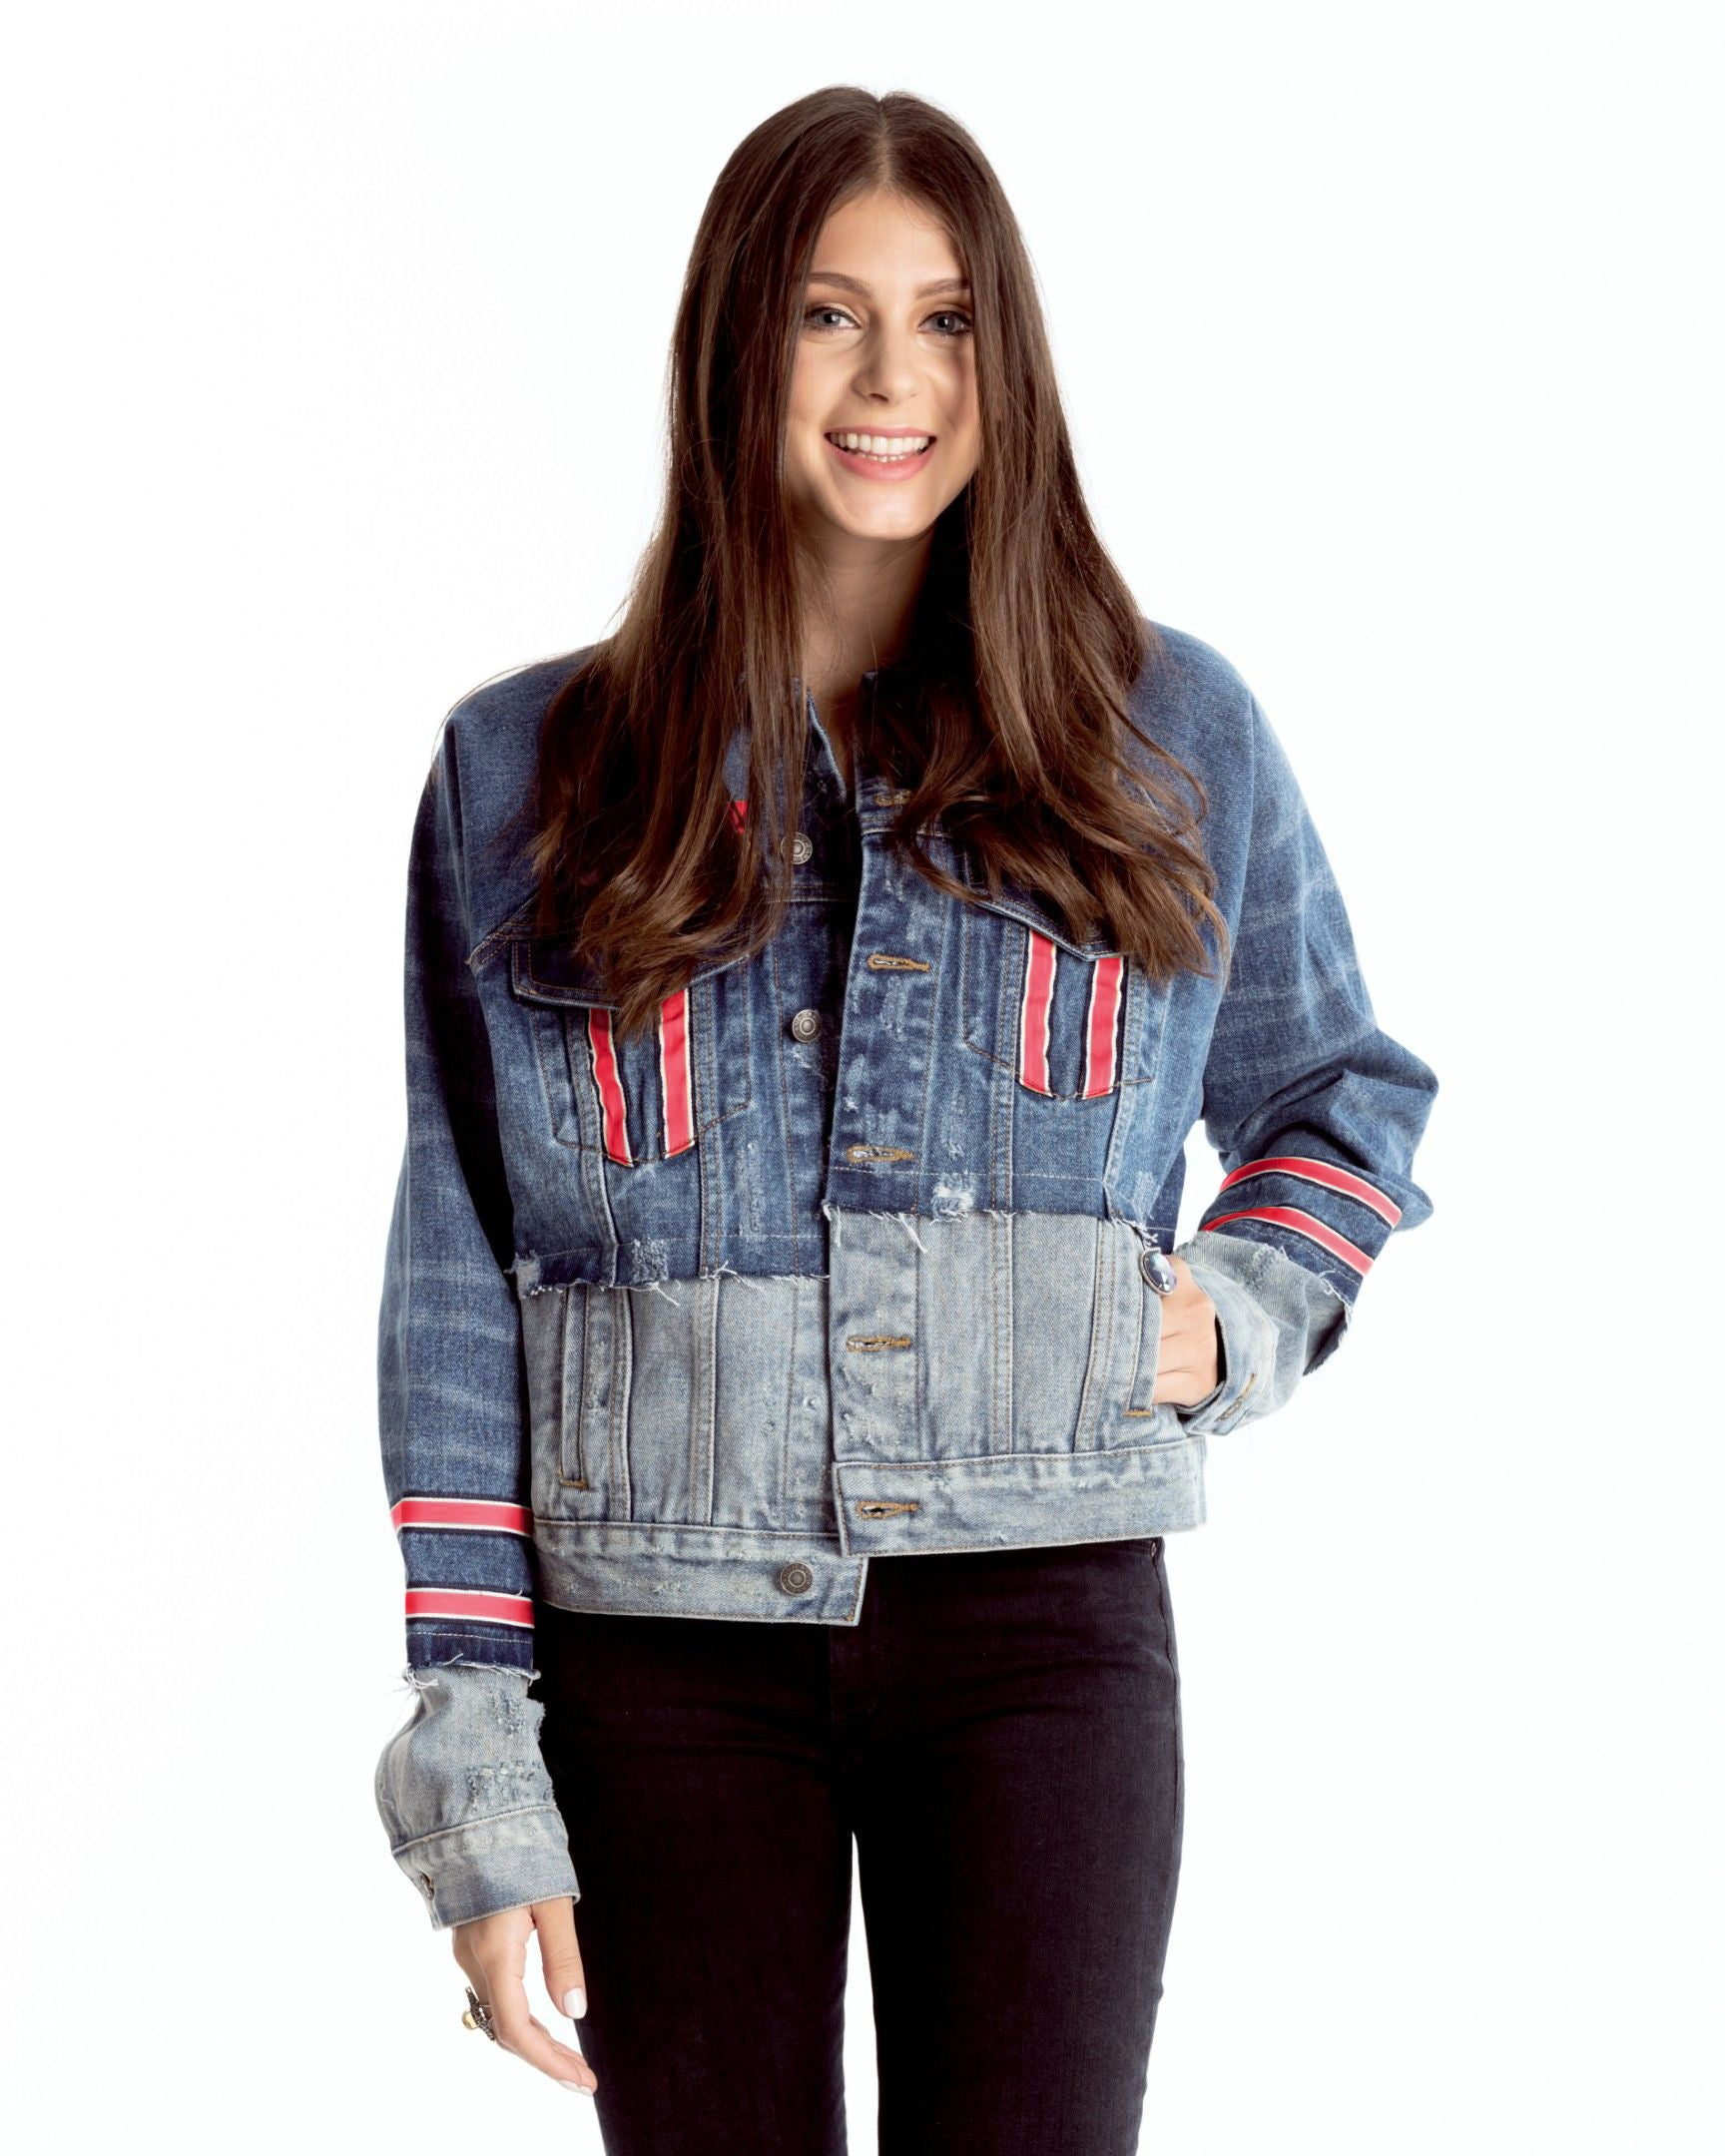 Two-Tone Denim Jacket with Red Jersey Stripes Collegiate